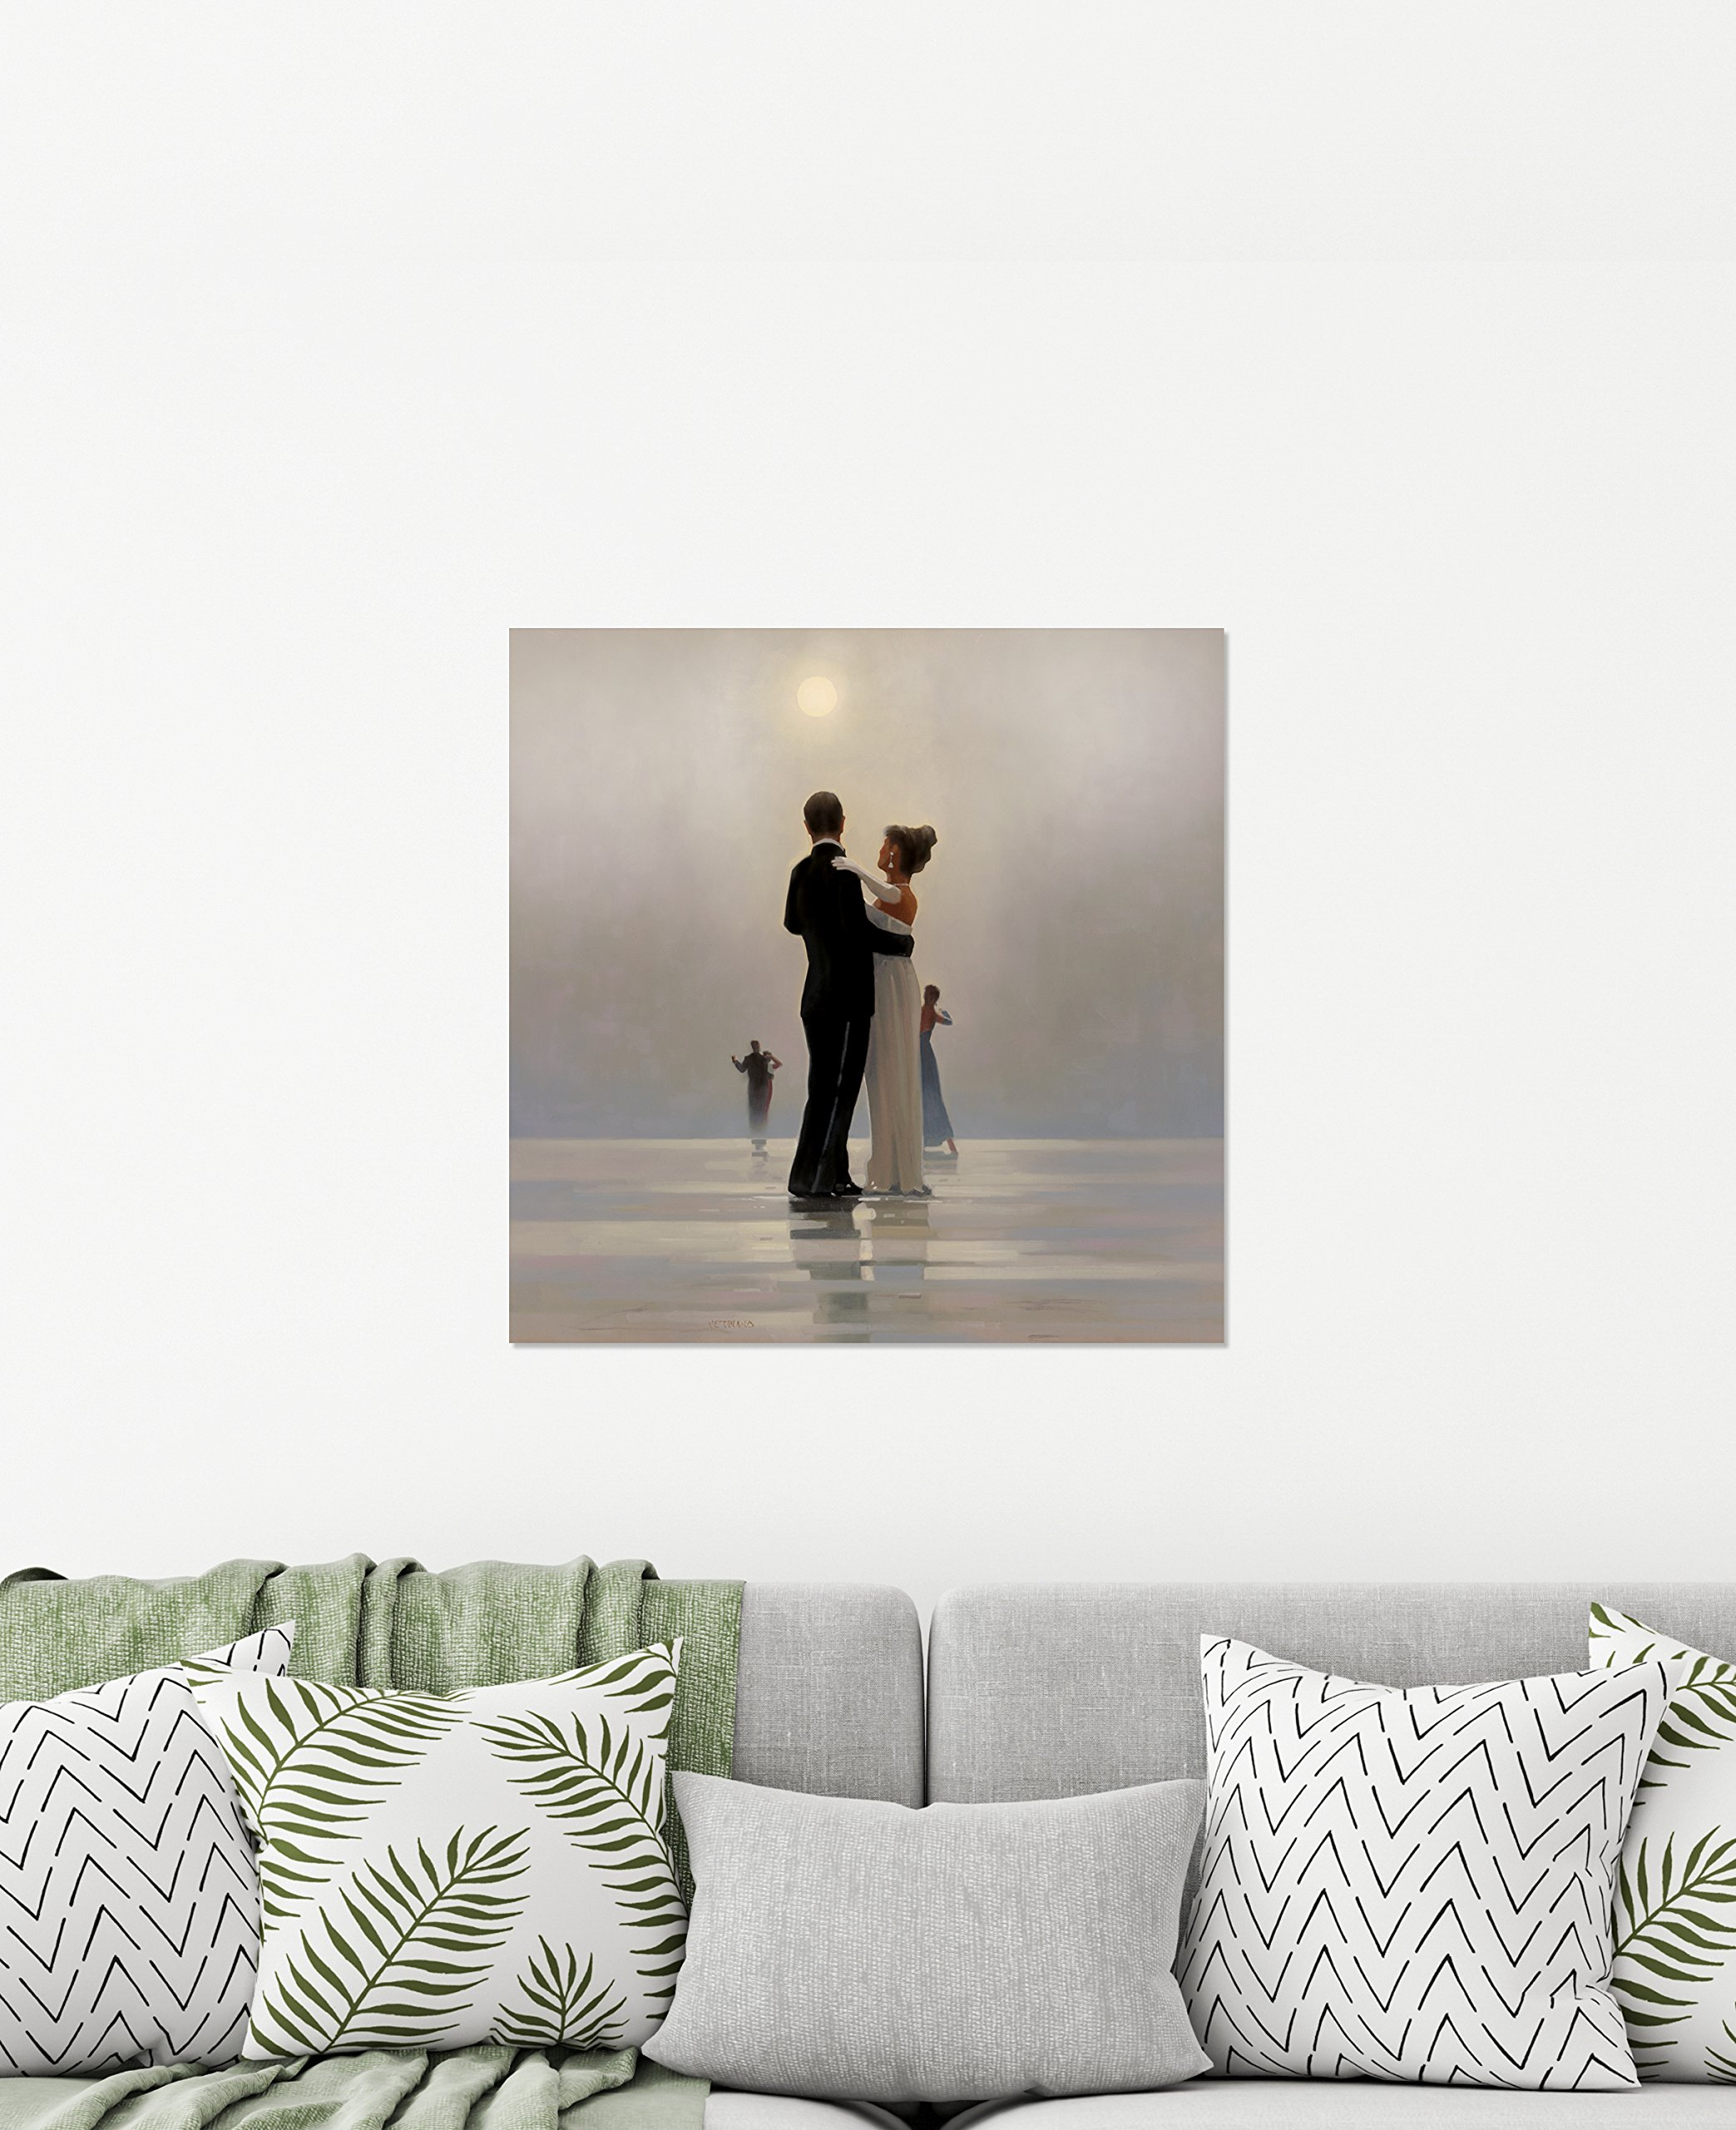 ArtMaison.ca 24X24 Dance Me Till the End of Love, Printed Canvas Gel Coated Romantic Wall Art, Medium, Black, White by ArtMaison.ca (Image #2)